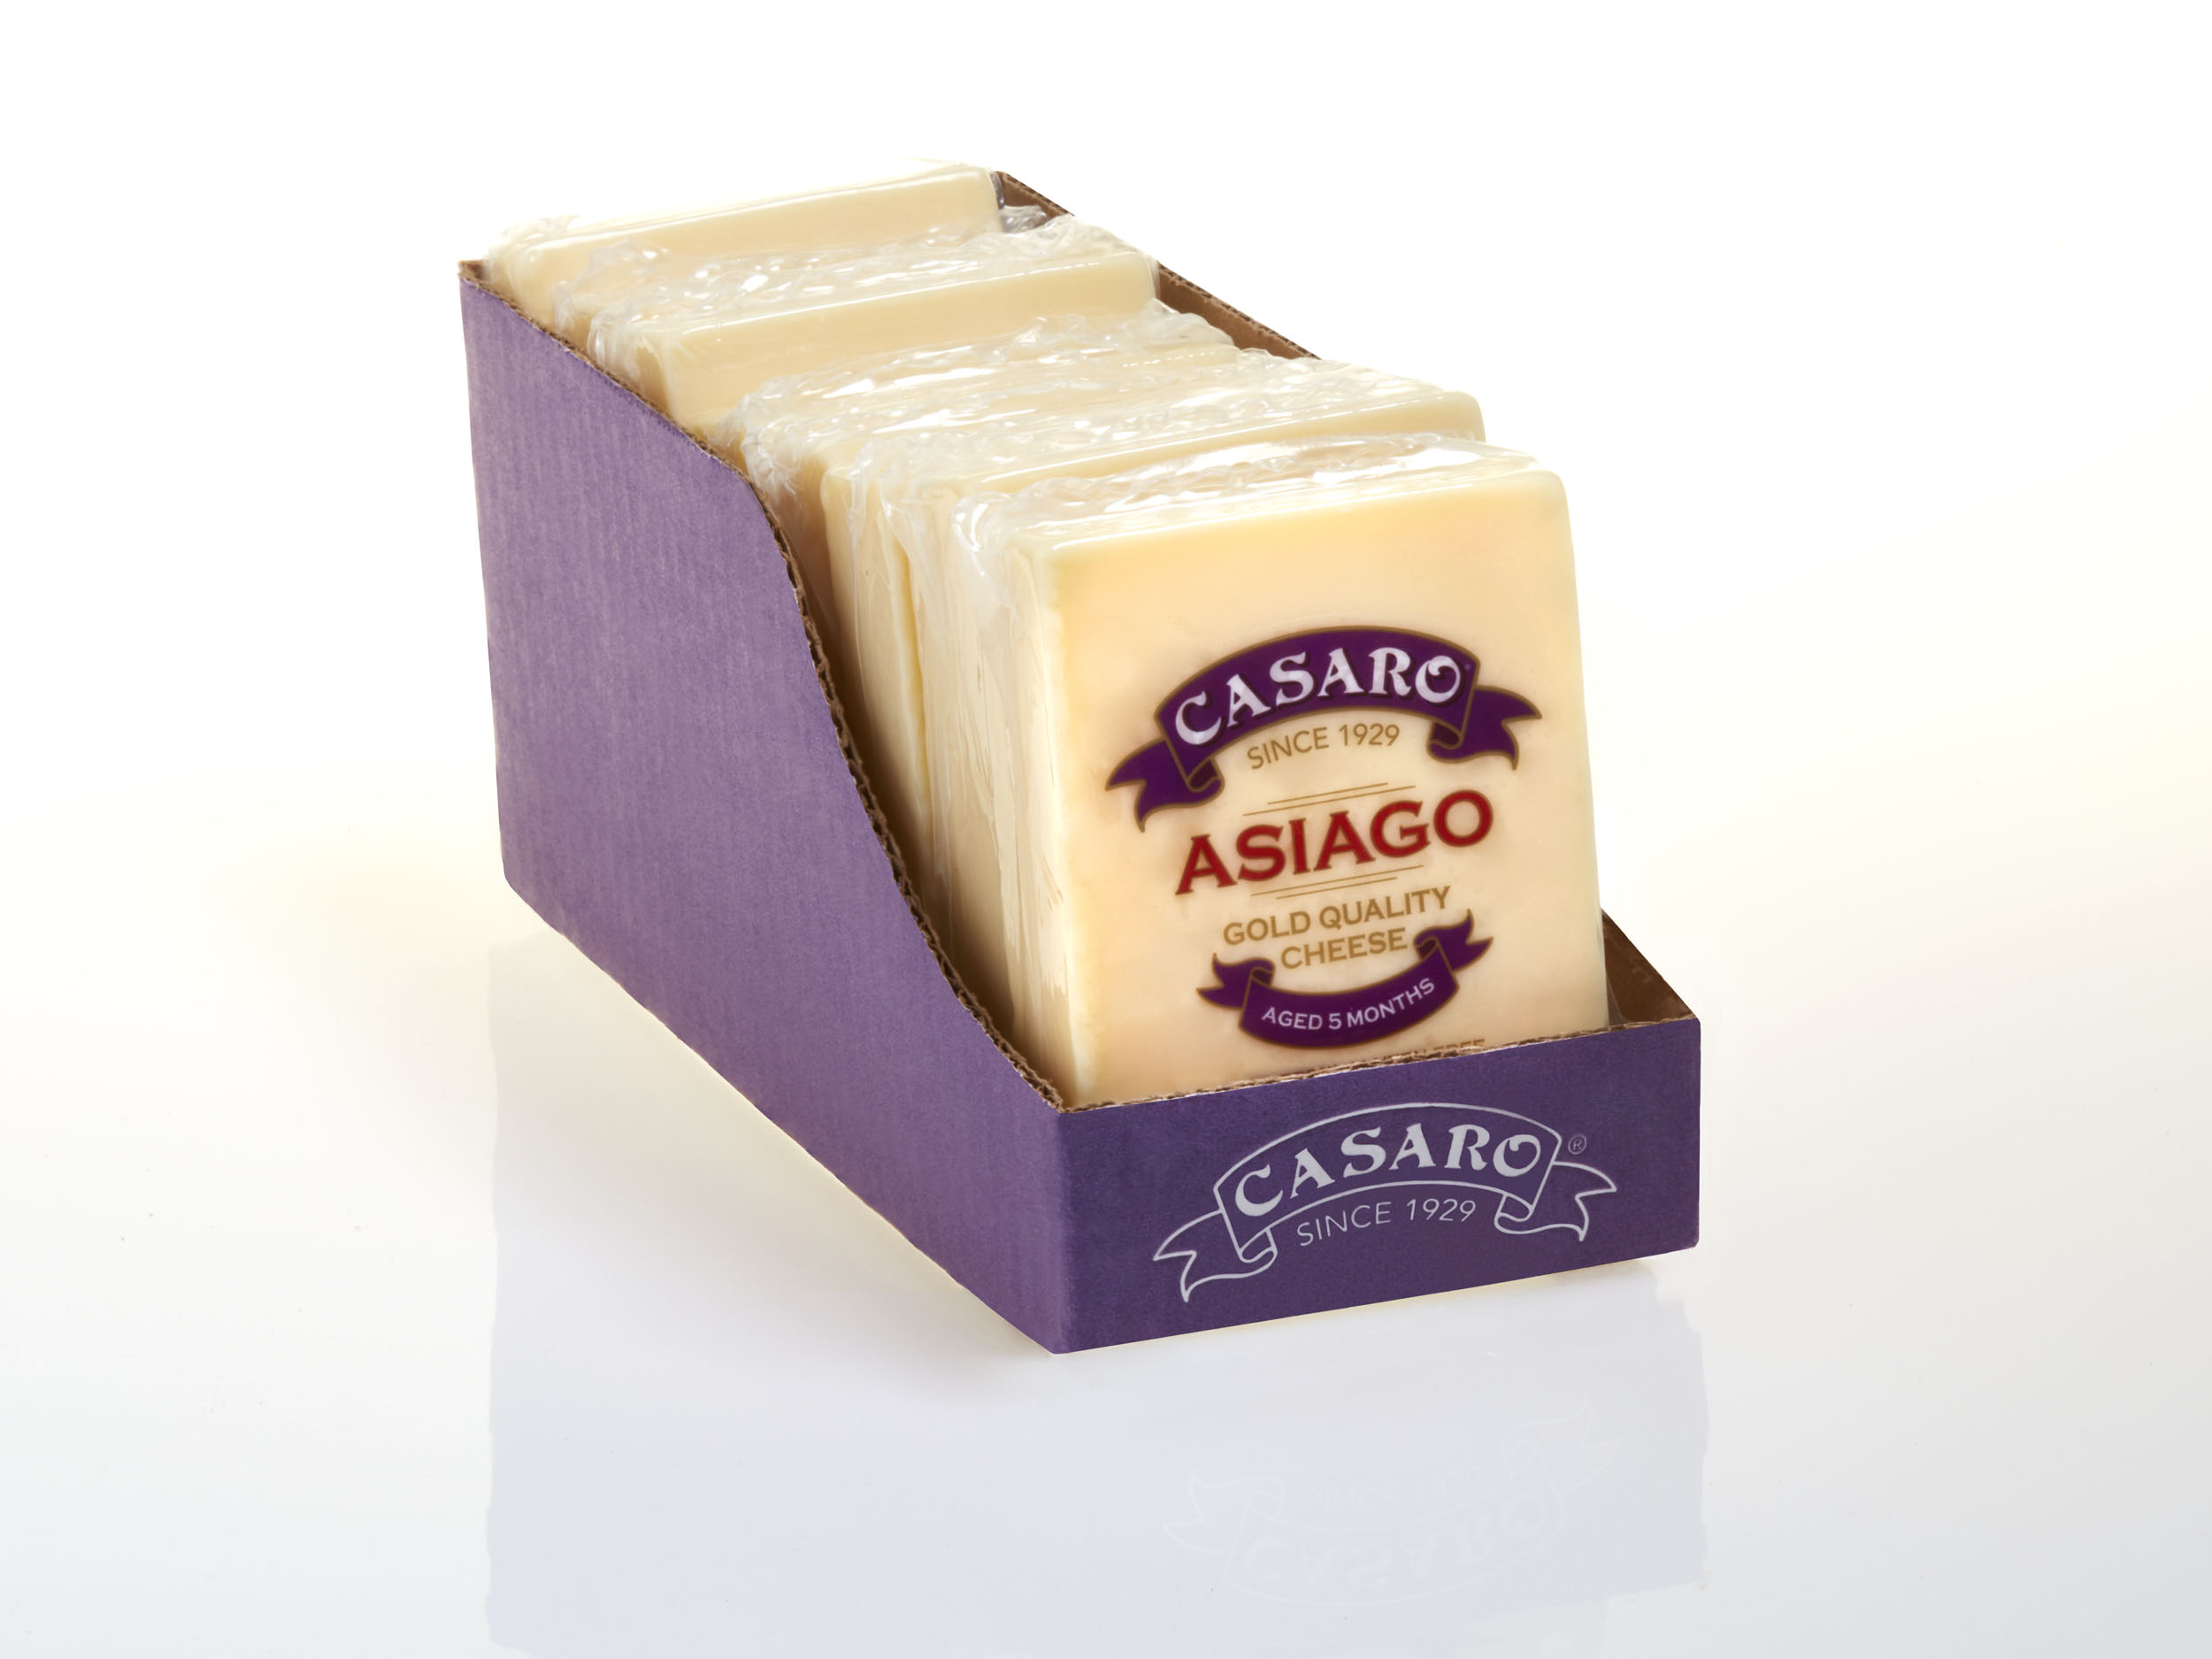 7 oz Casaro Asiago Case.jpg